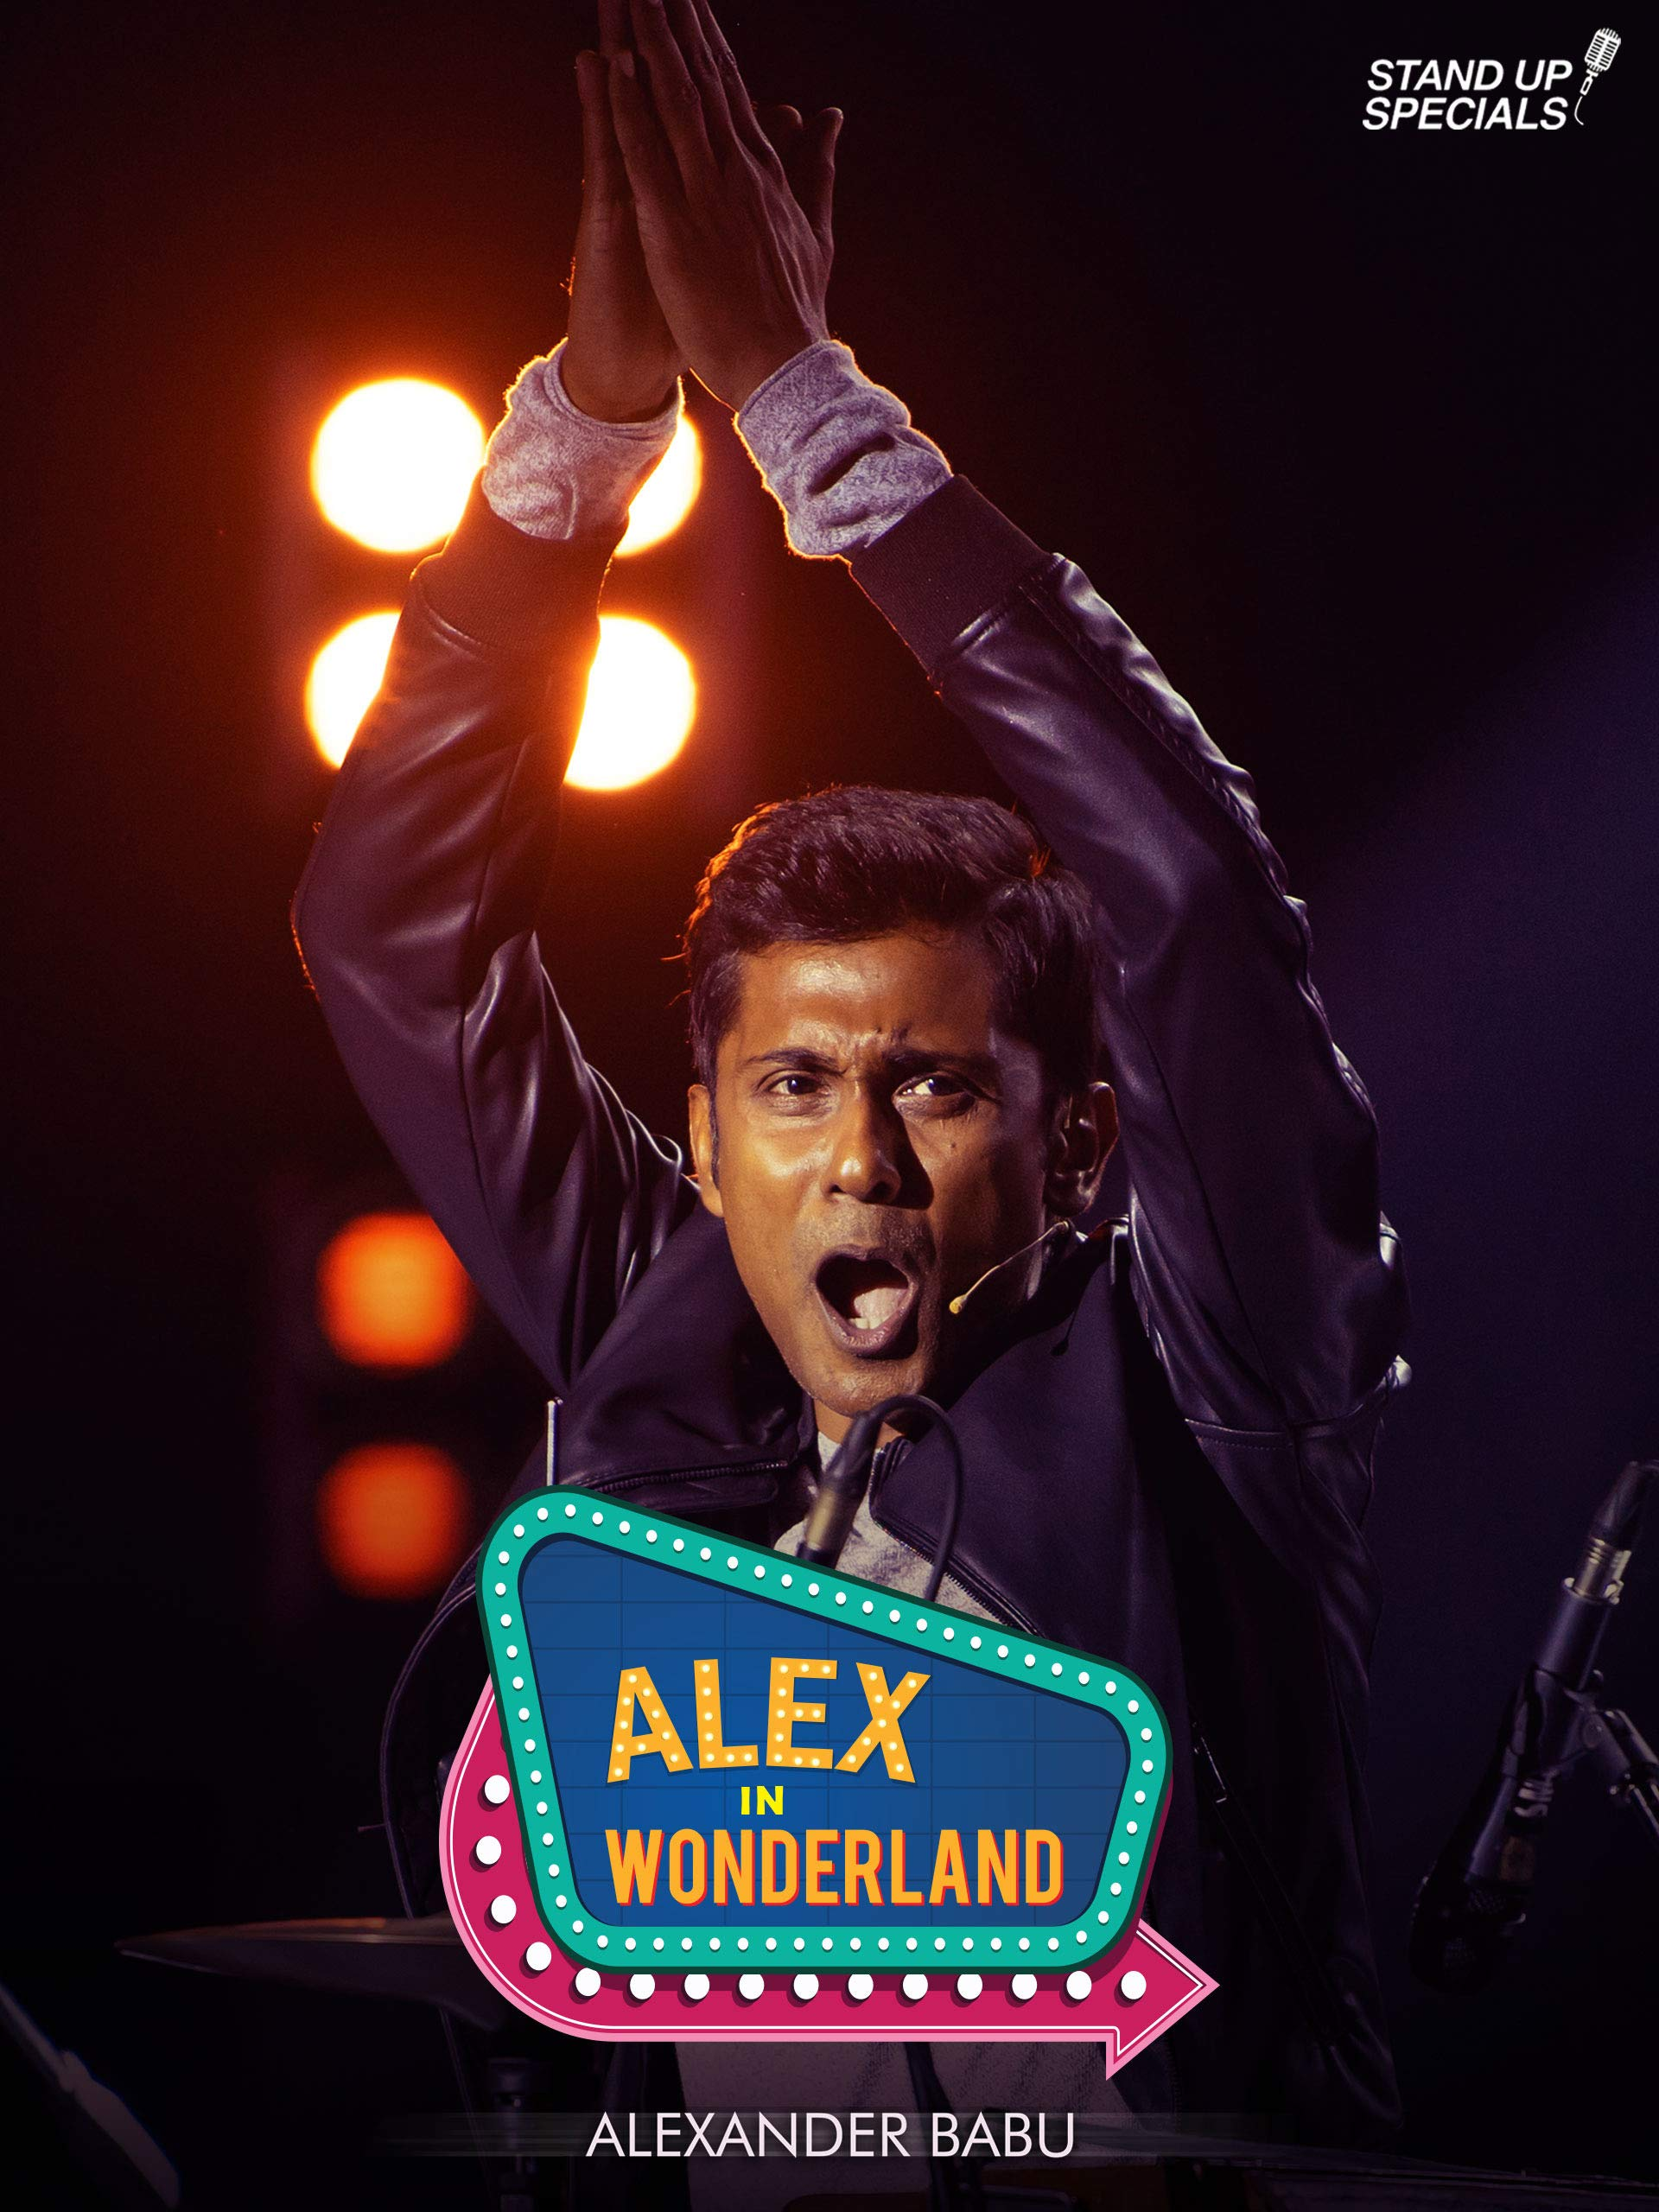 Alex in Wonderland (4K UHD)